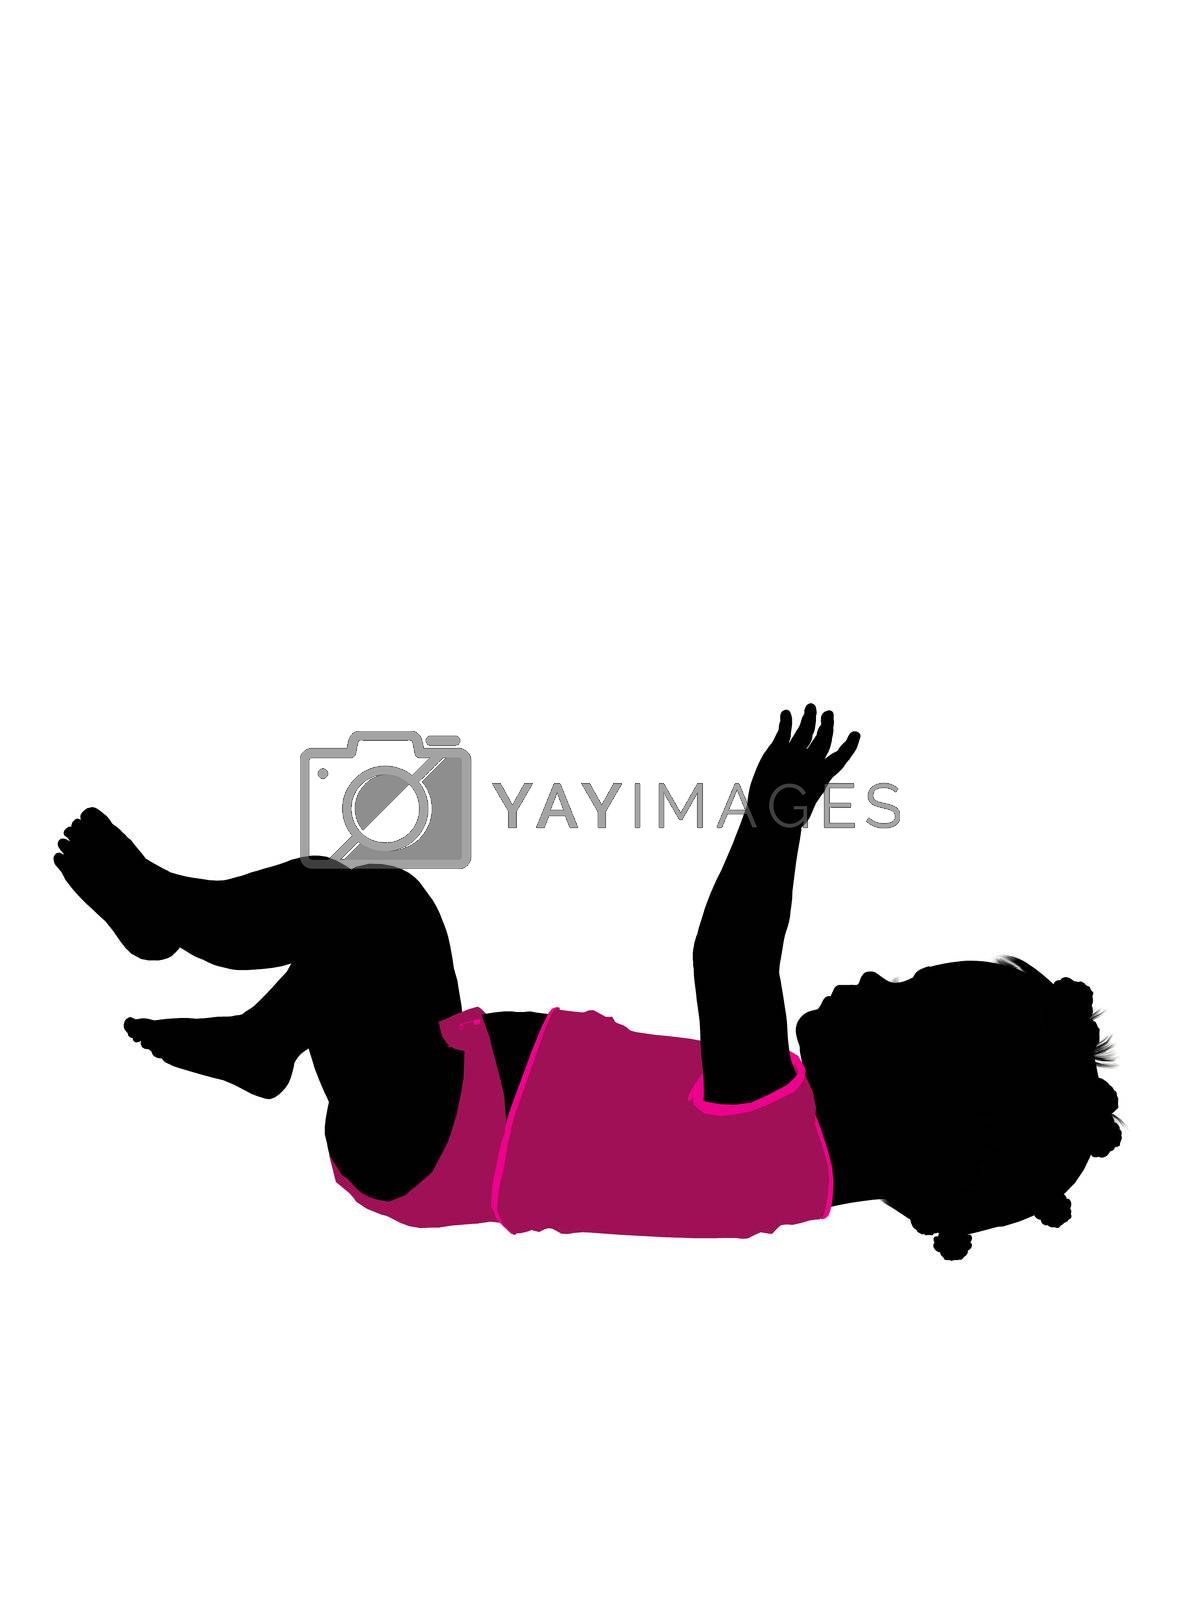 African american female infant toddler silhouette on a white background